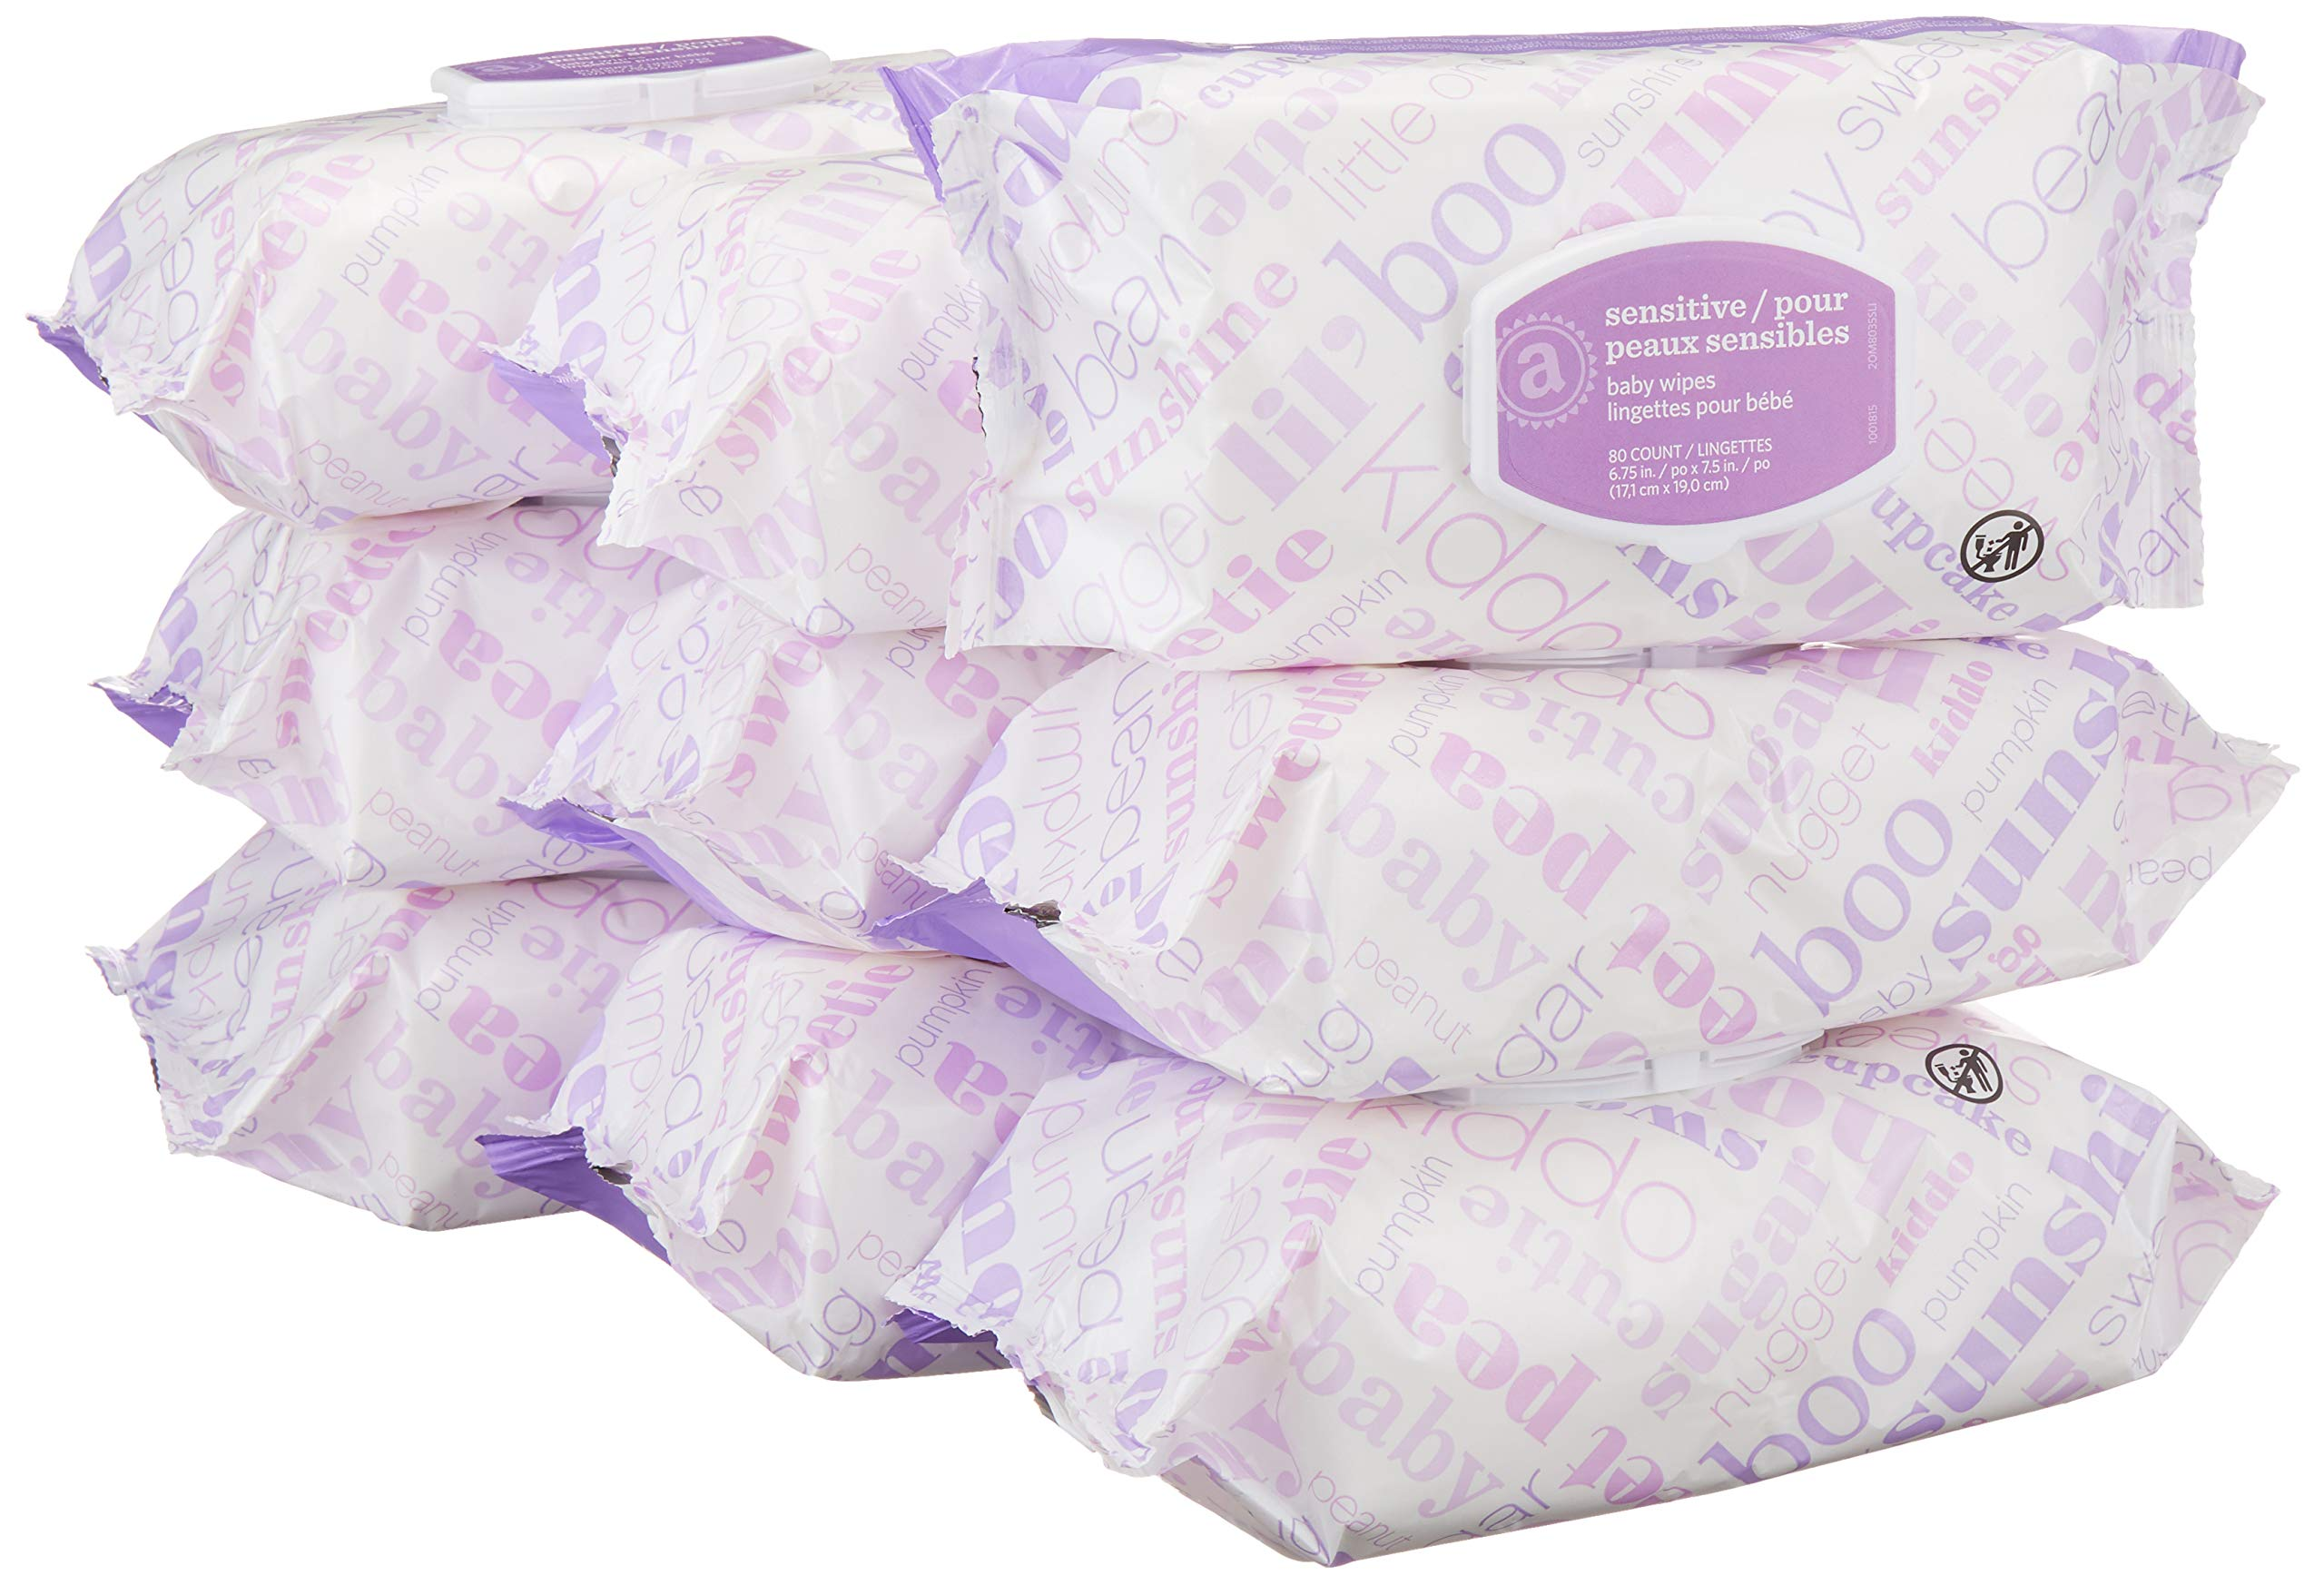 Amazon Elements Baby Wipes, Sensitive, 720 Count, Flip-Top Packs product image